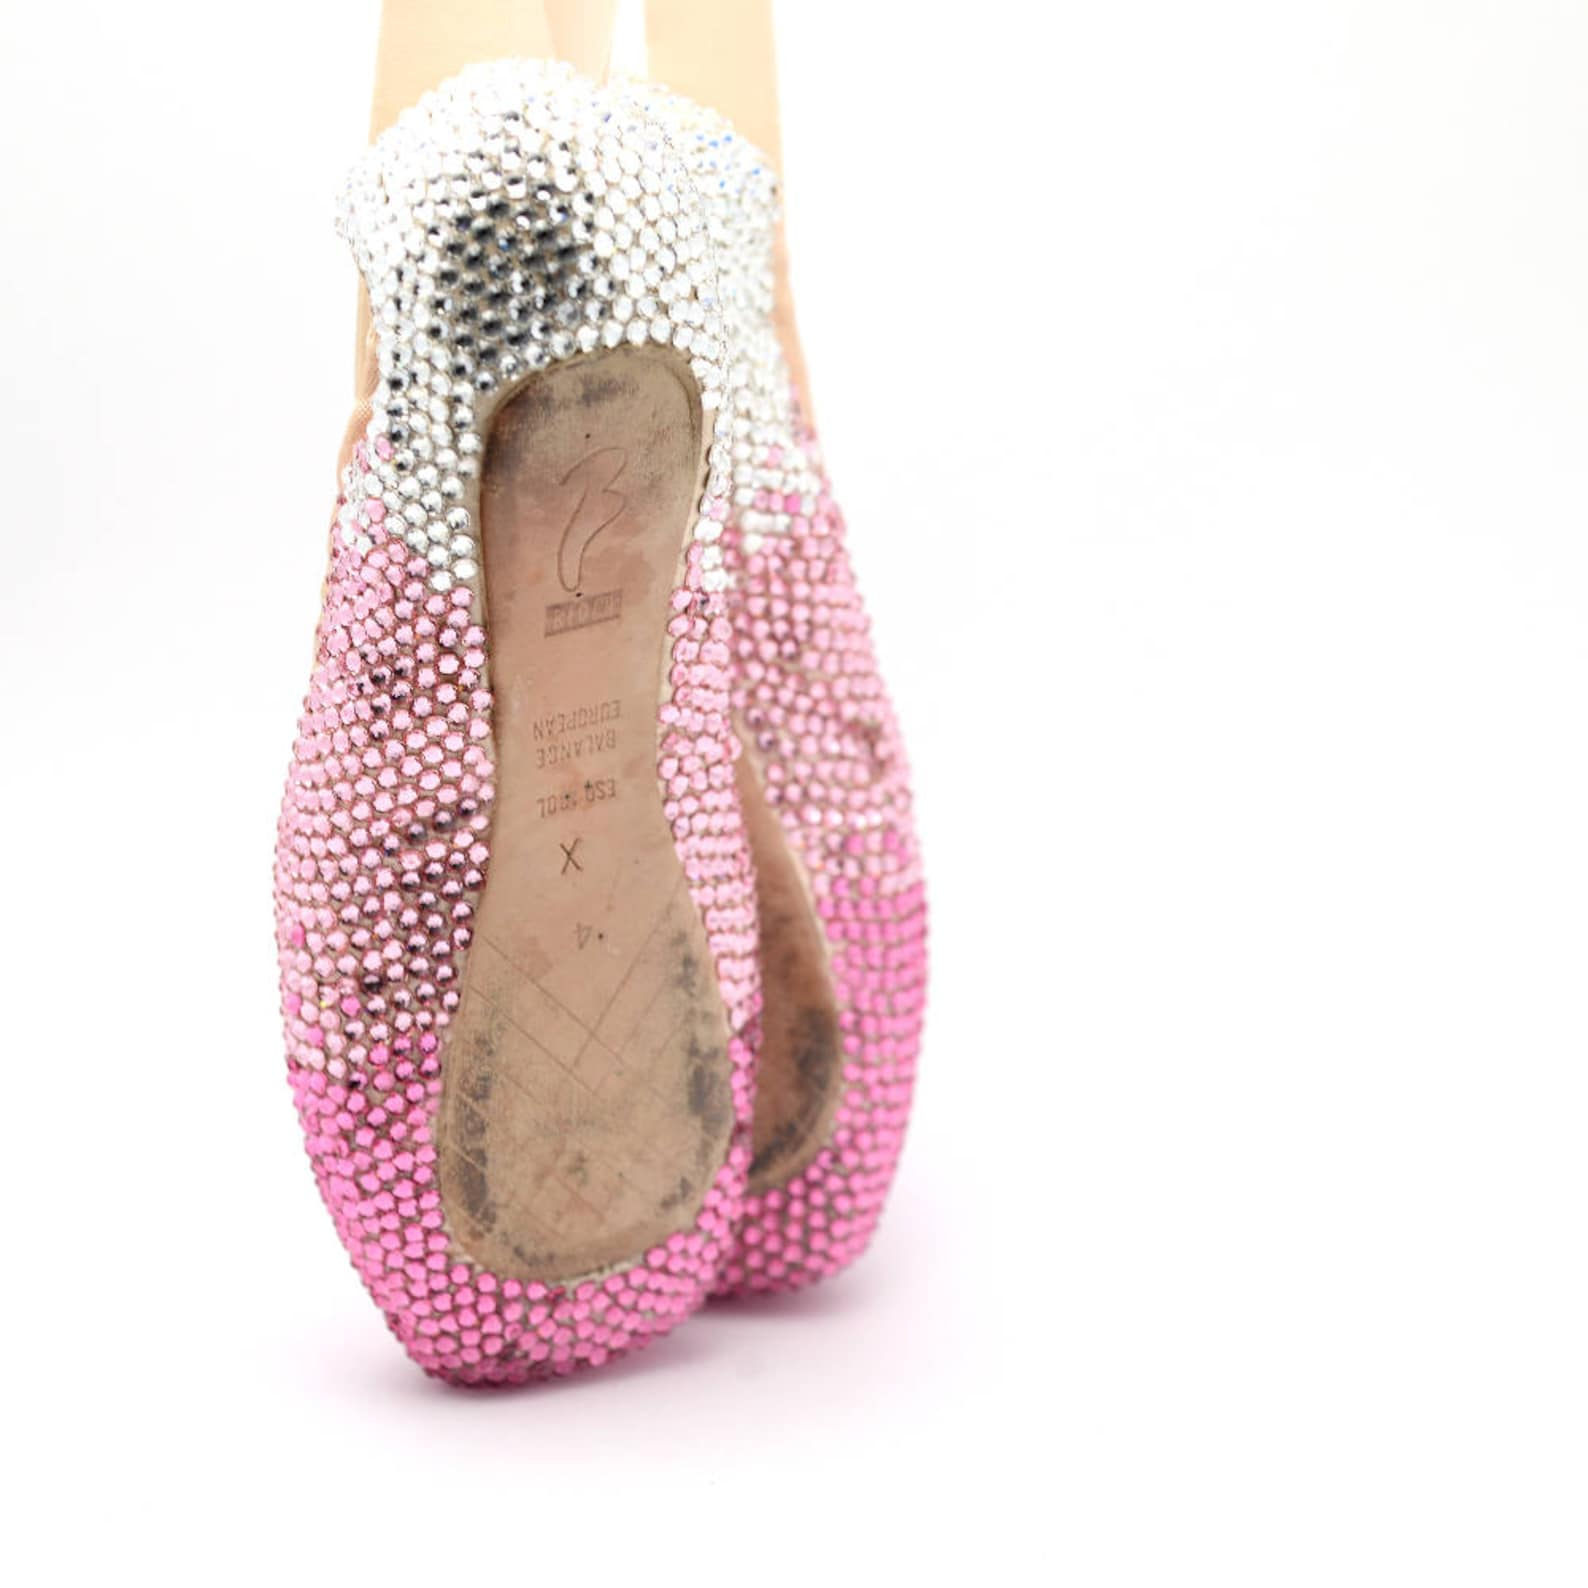 decorated pointe shoes | crystal ballet shoes | gift for dancer | 100% swarovski crystals | your pointe shoes decorated with cry